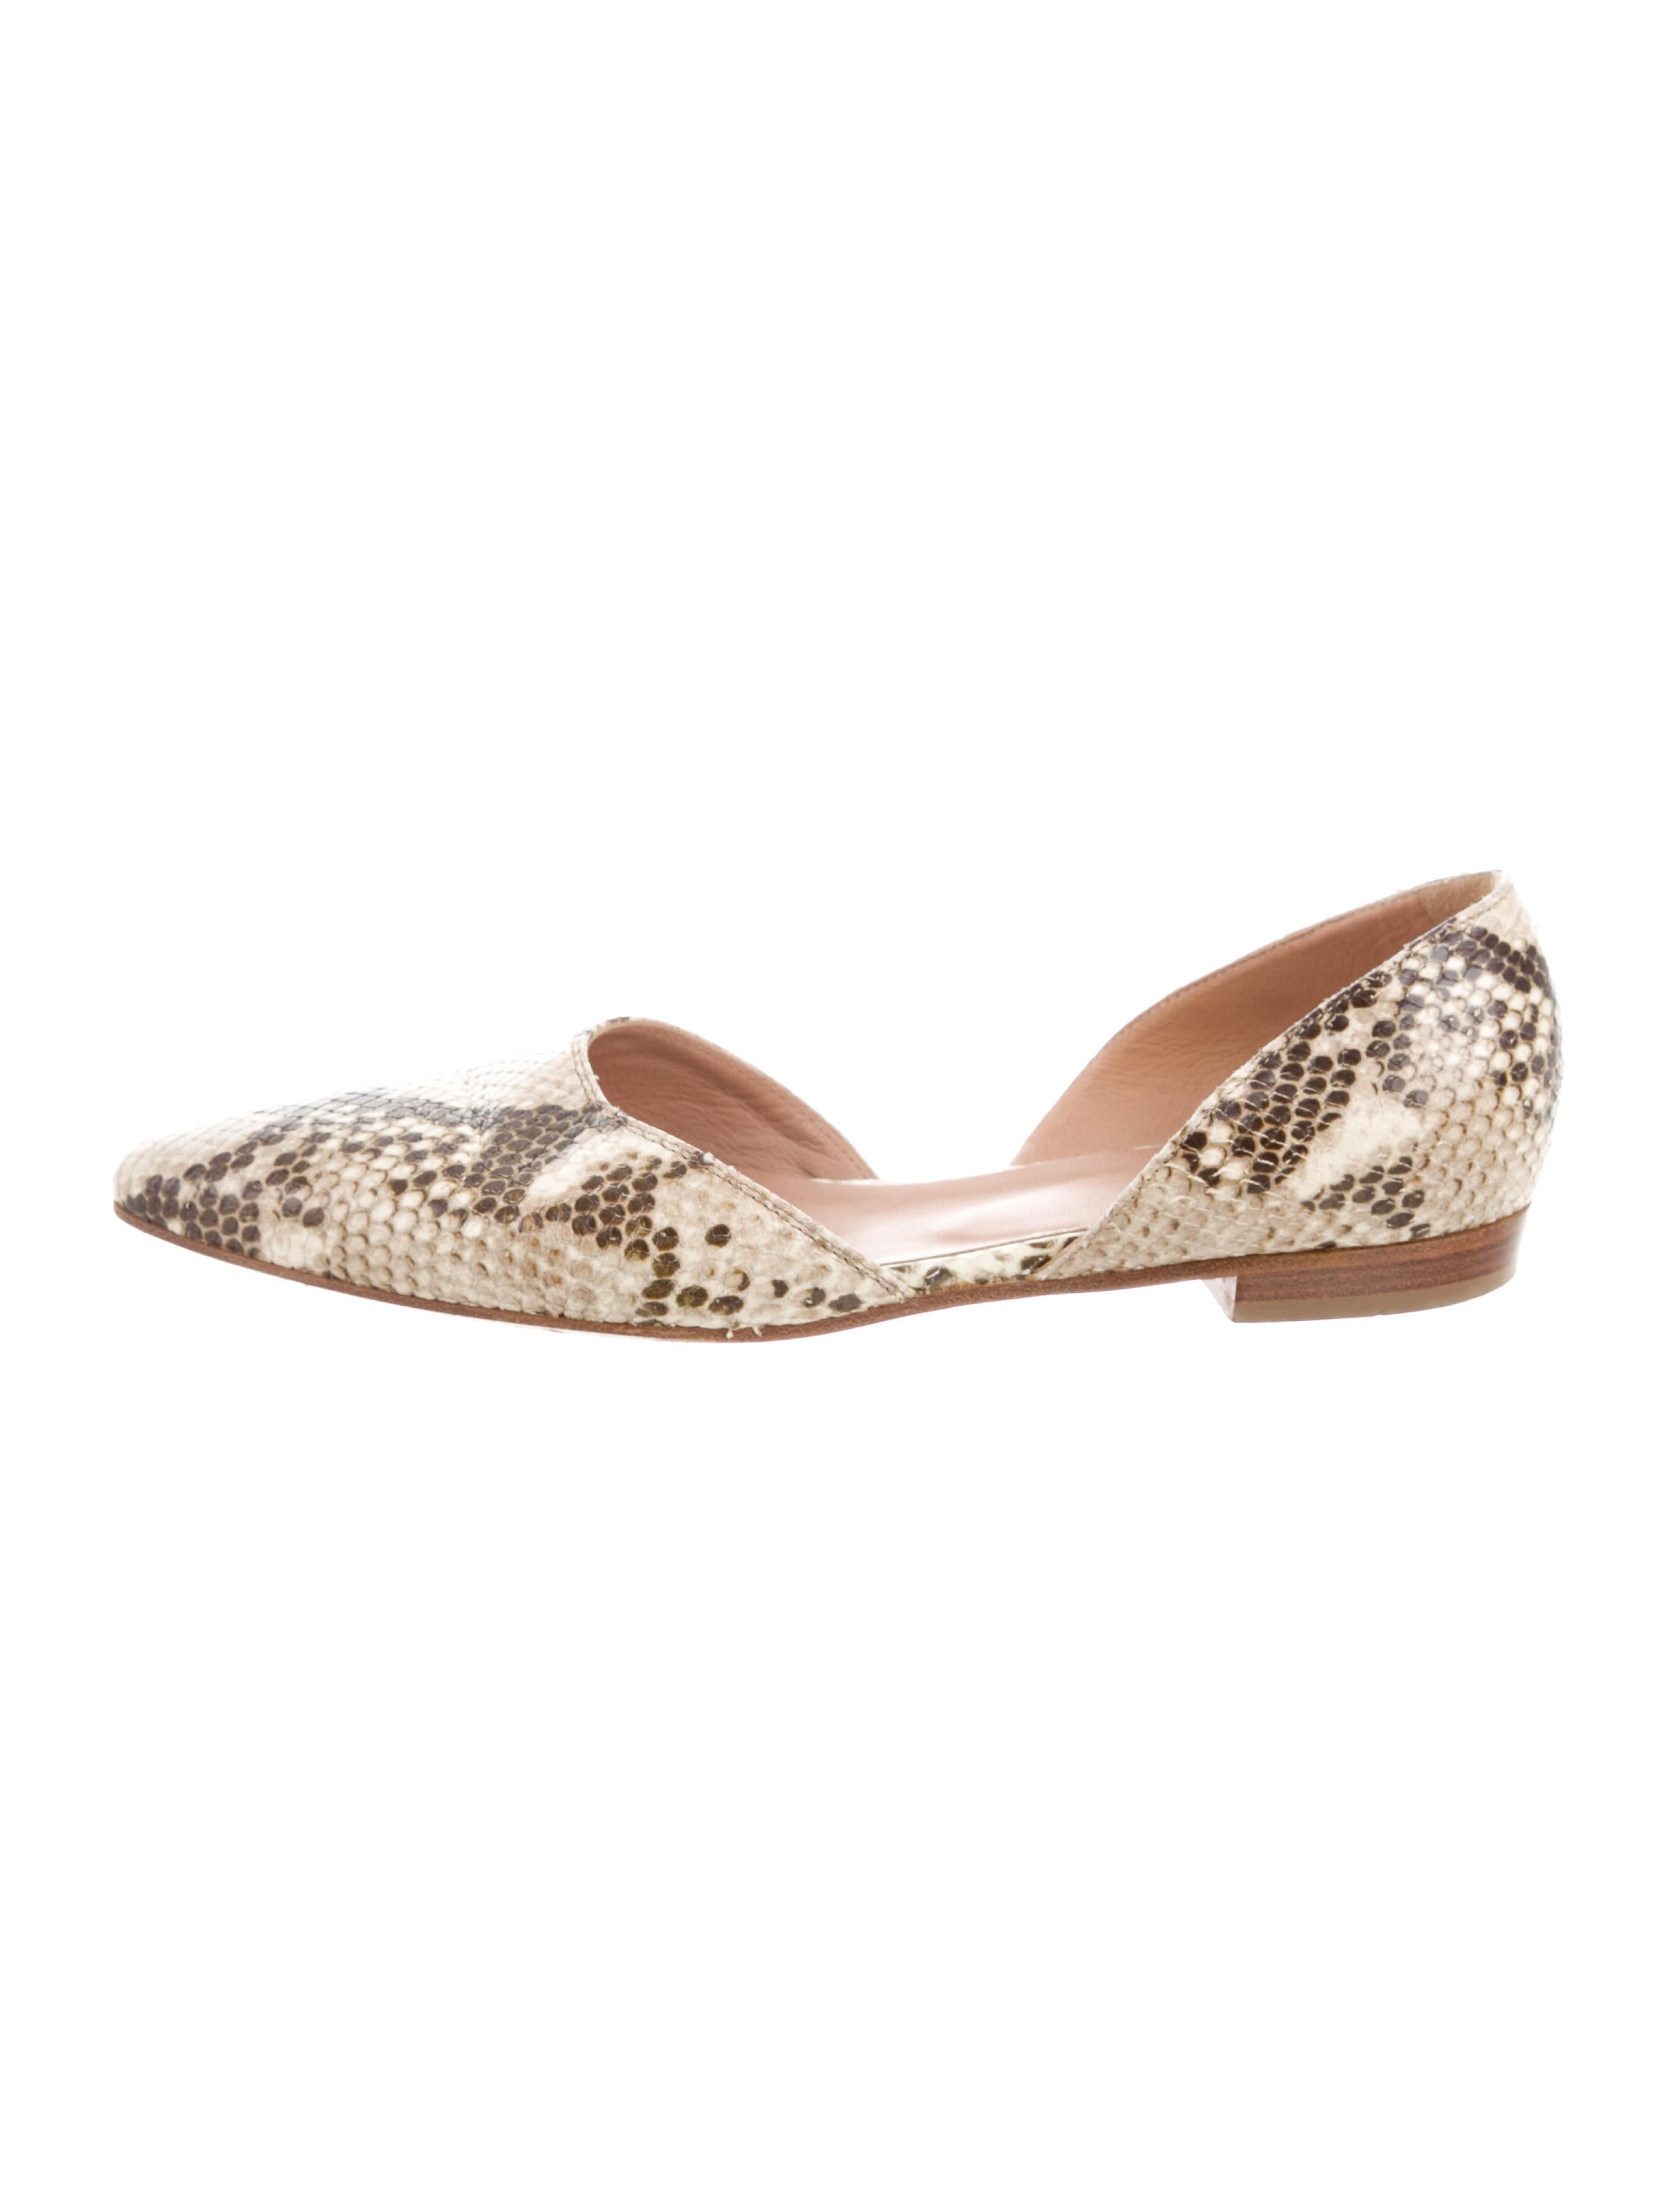 Barney's New York Embossed Leather Pointed-Toe Flats with mastercard for sale buy cheap 100% guaranteed vbHjFZPrR